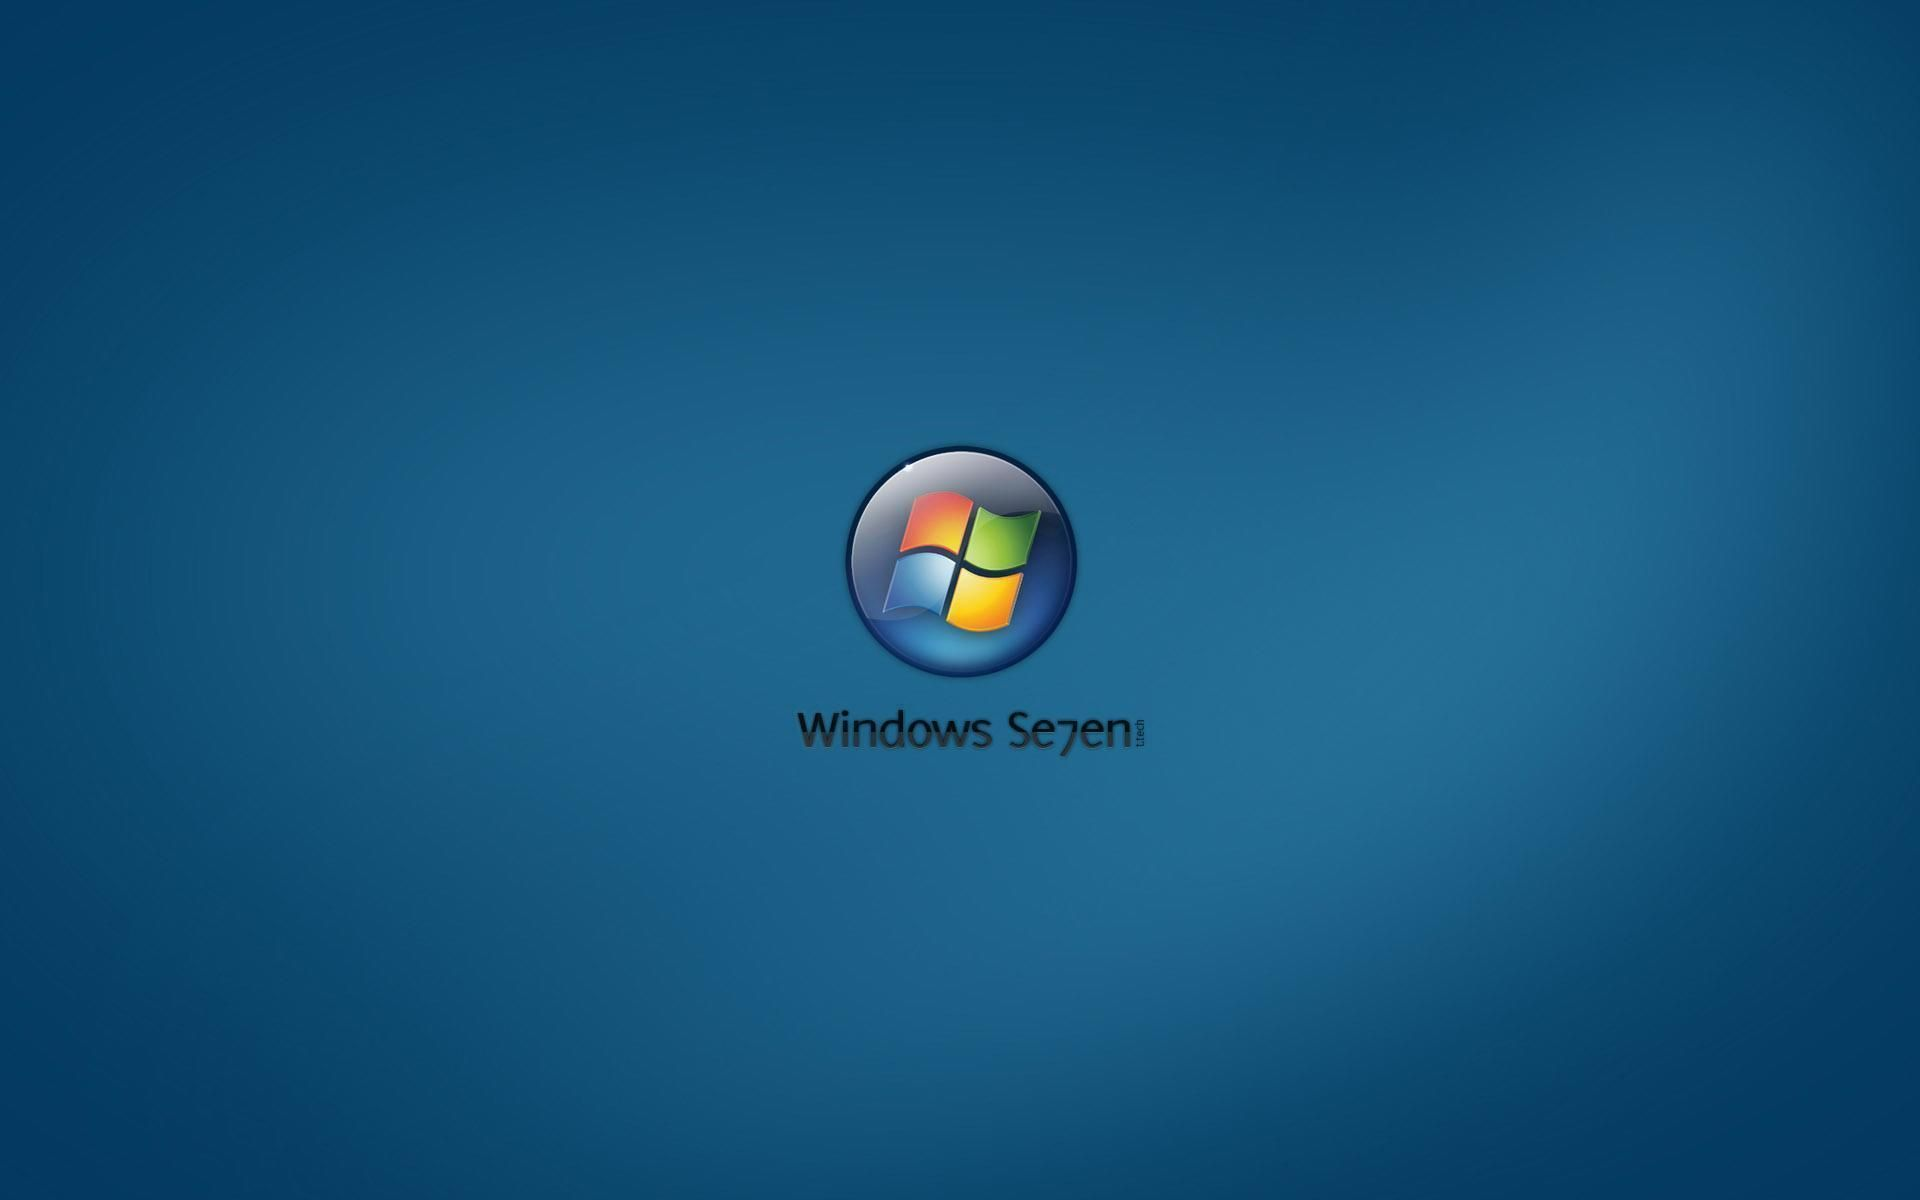 Windows 7 Official Wallpapers Wallpaper Cave News To Go 3